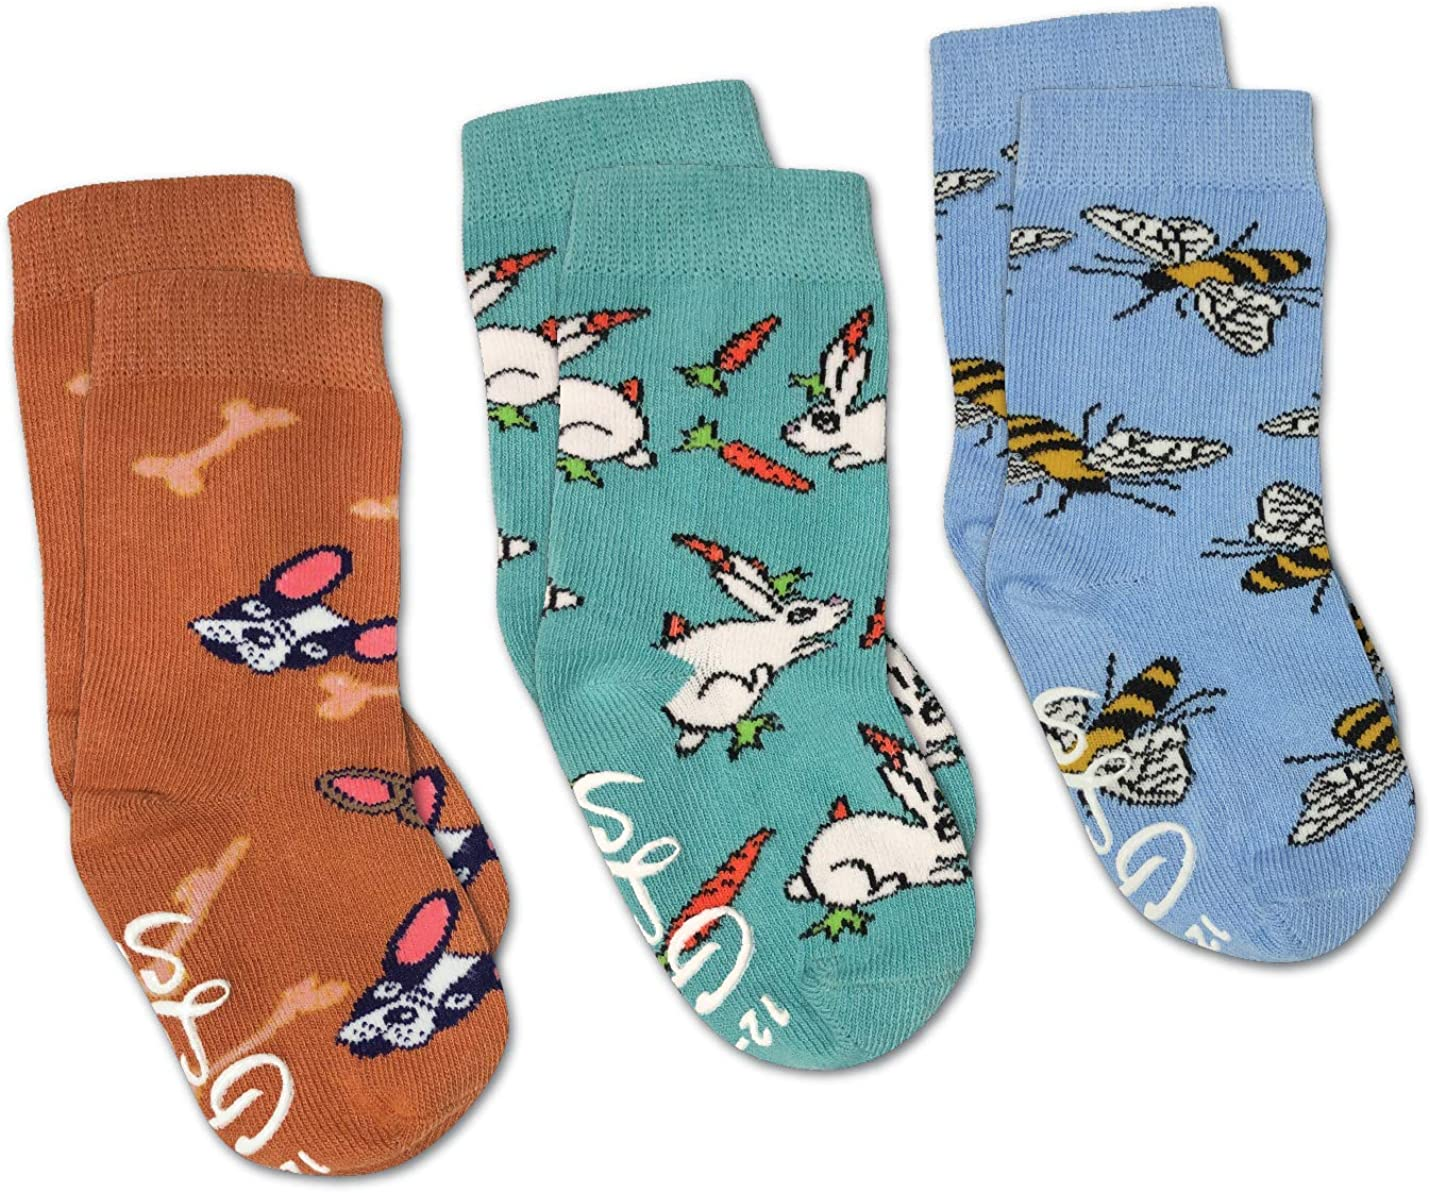 Bees, Bunnies and Dogs Kids Toddler Socks, 3-Pack